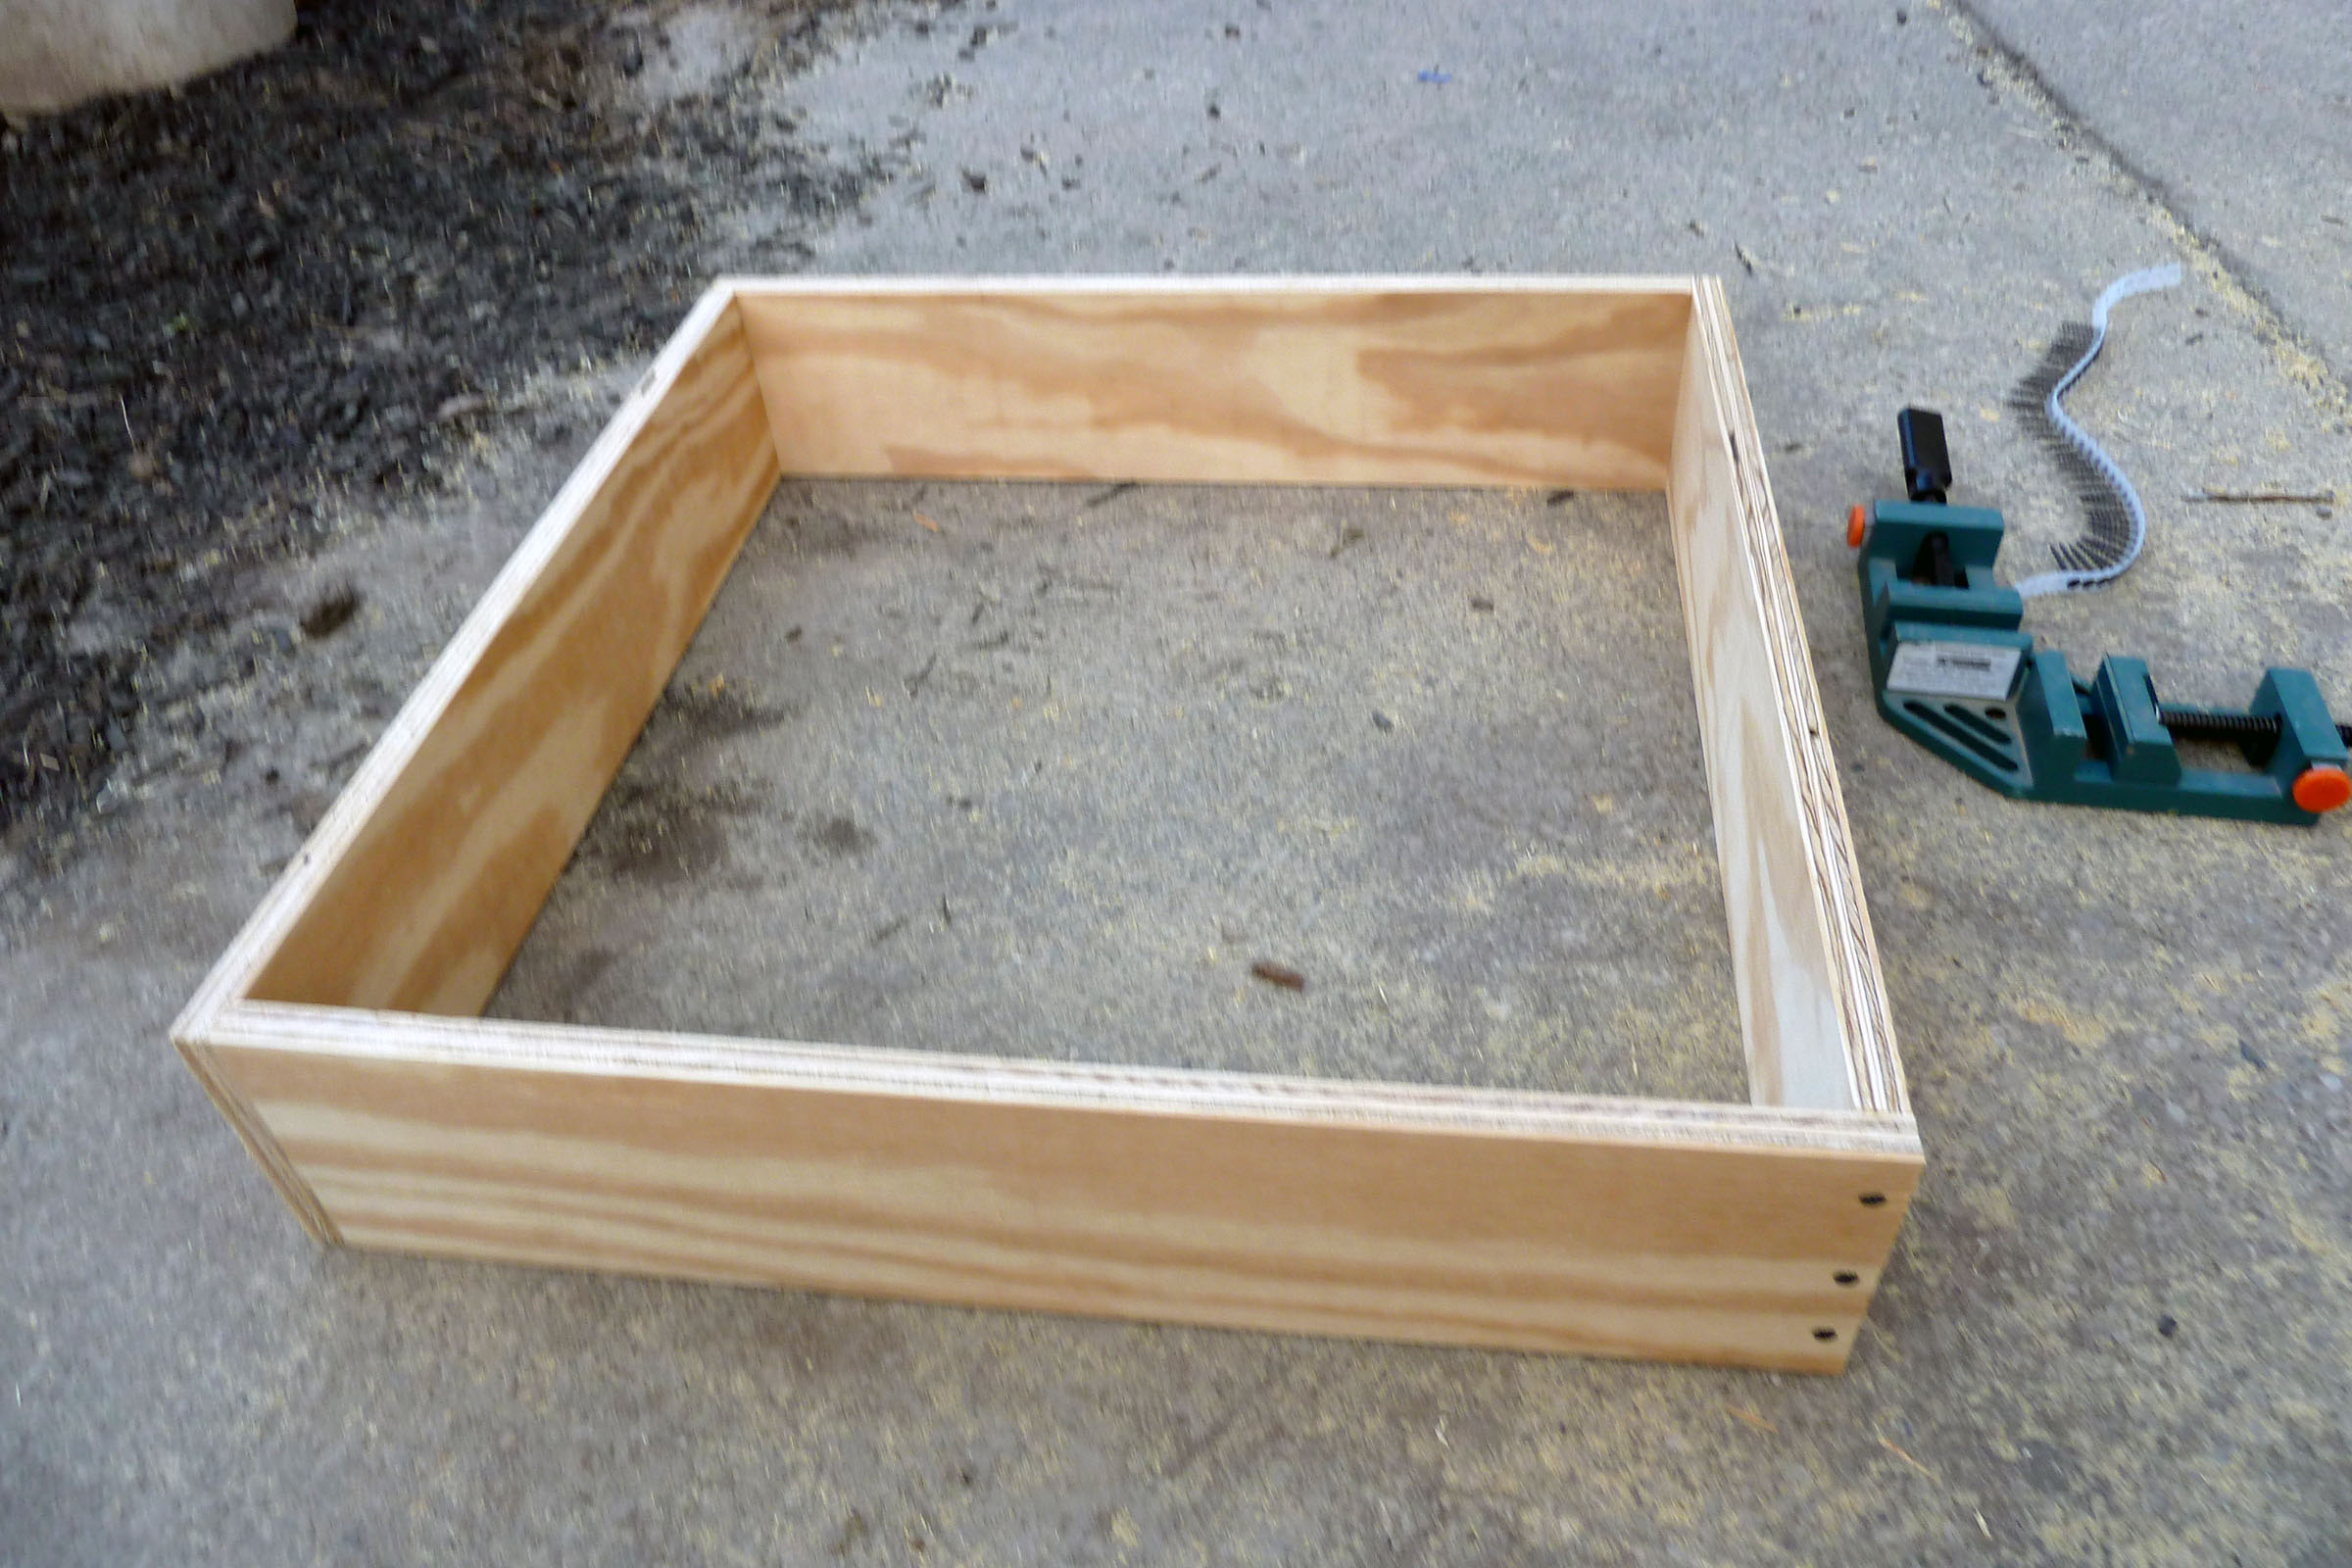 Picture of Forming the Trays